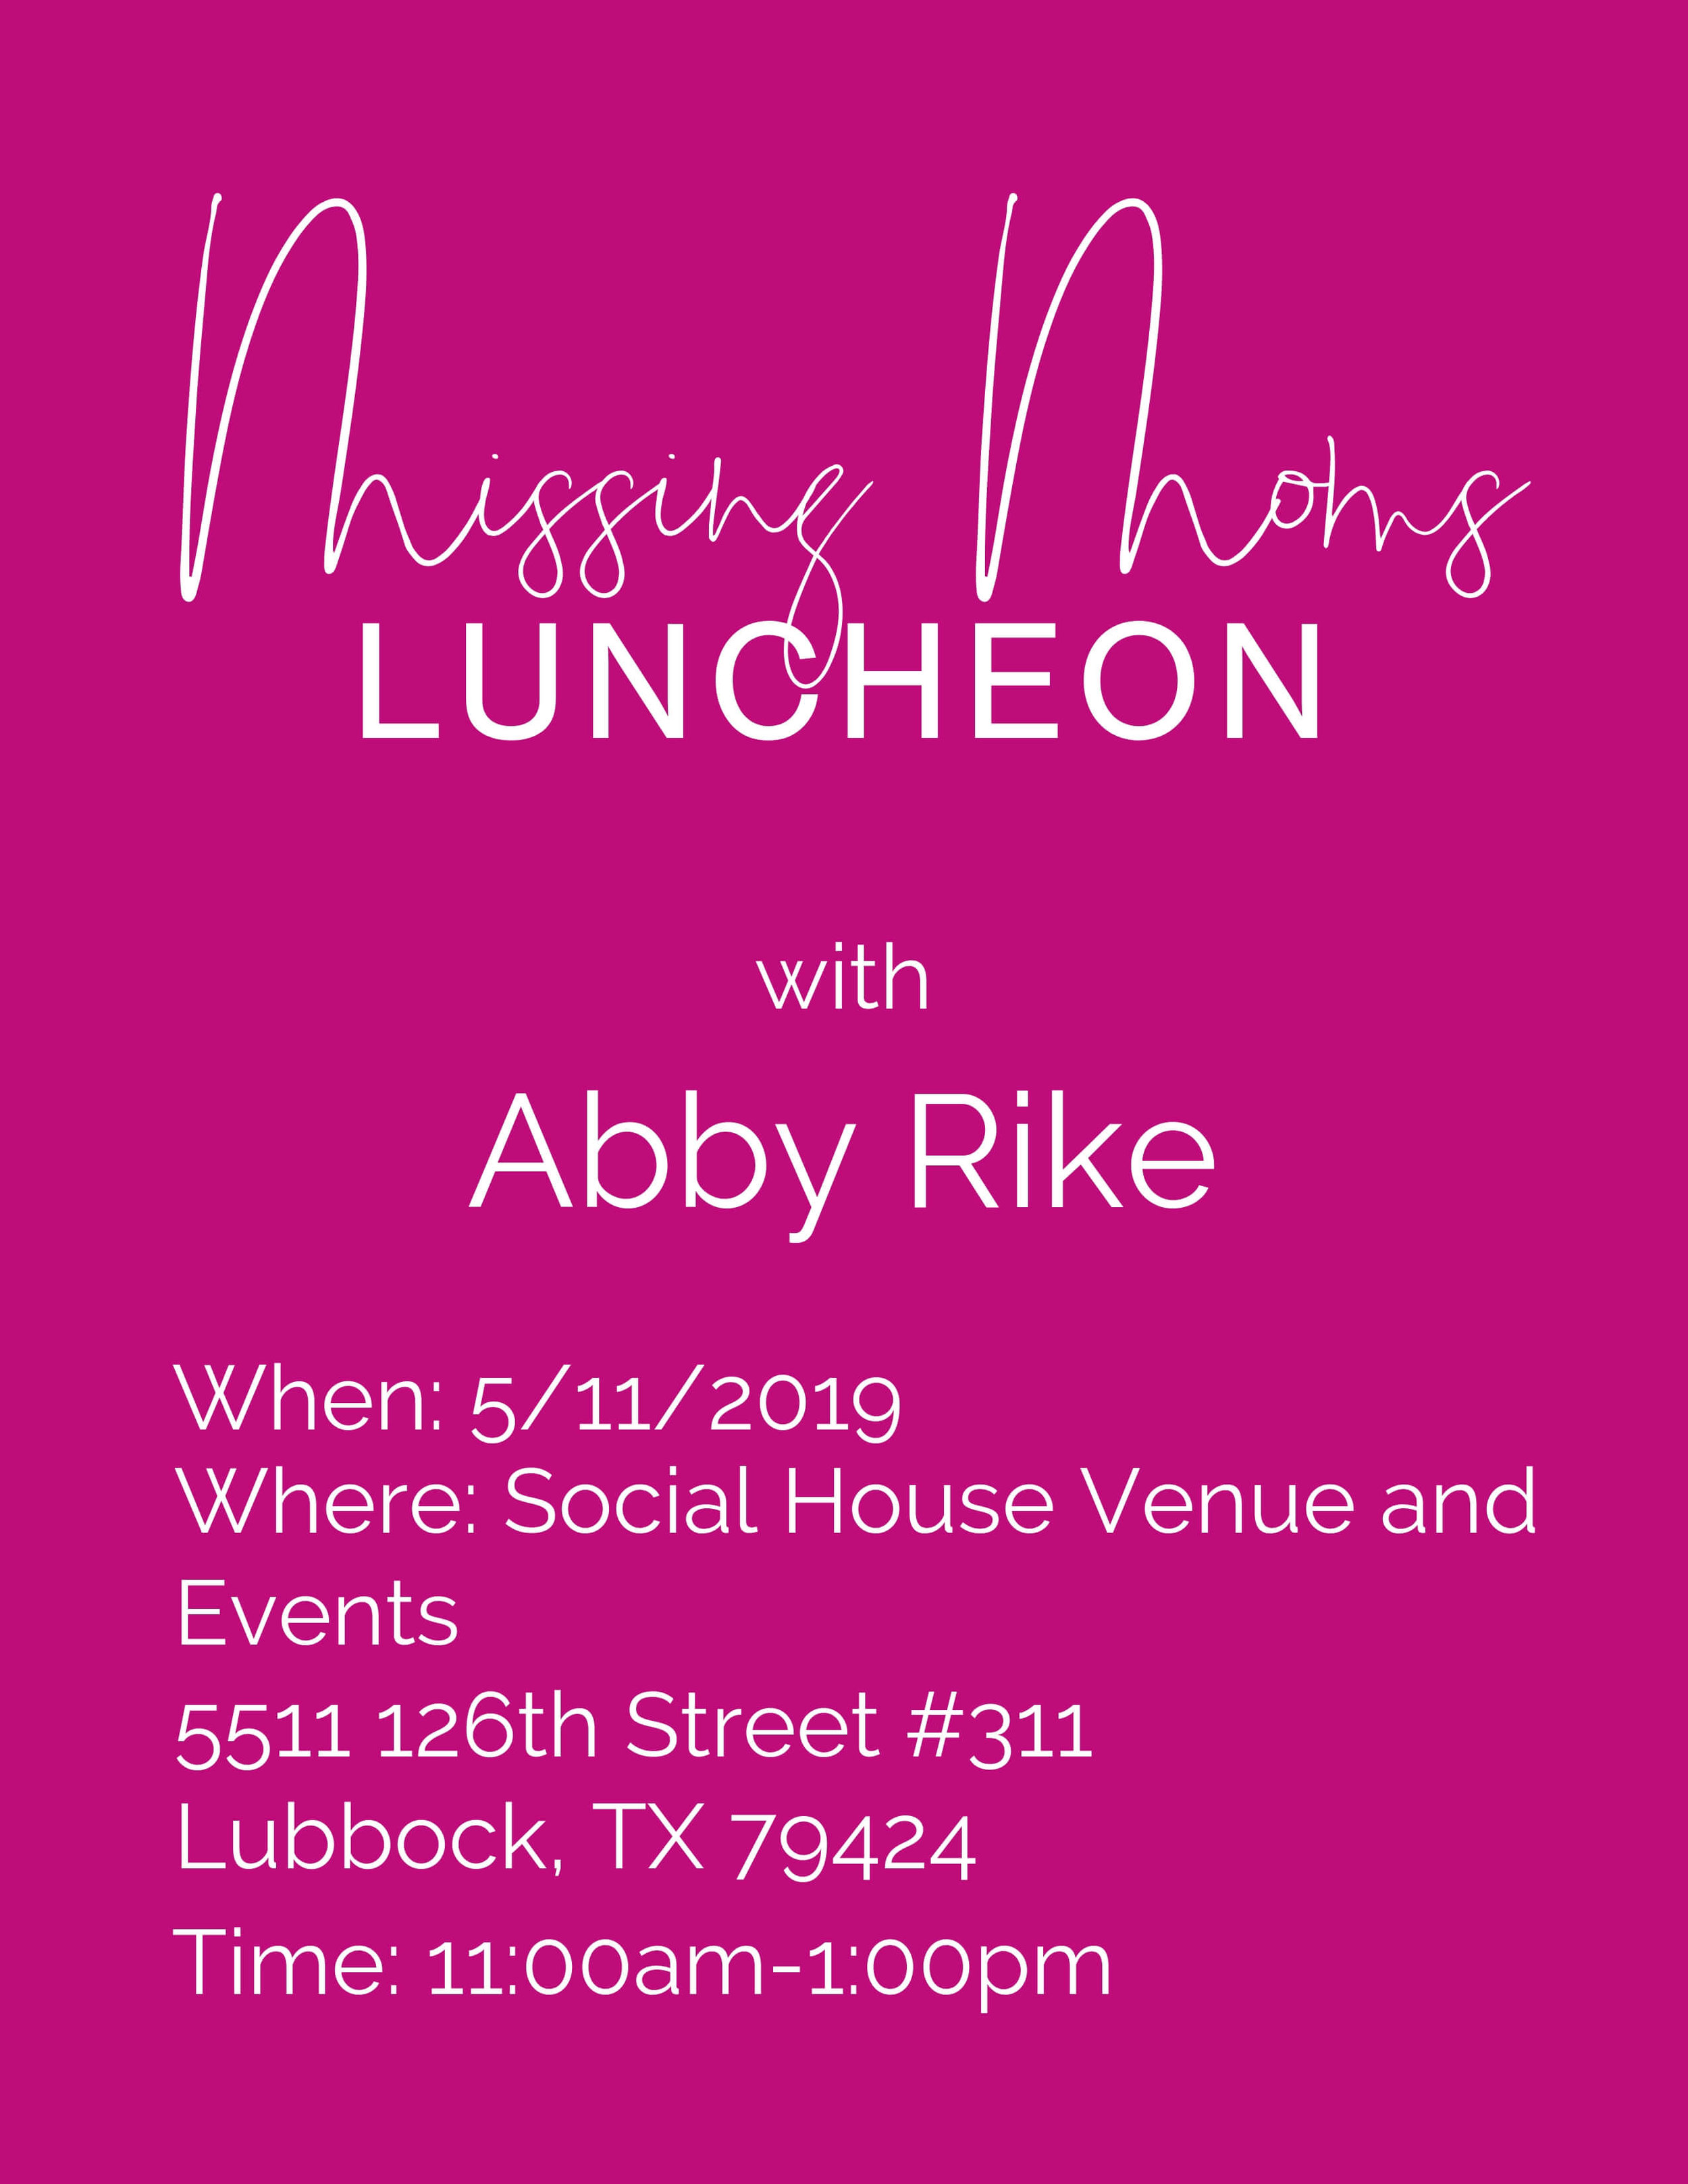 Speaking-event-missing-moms-luncheon-lubbock-texas